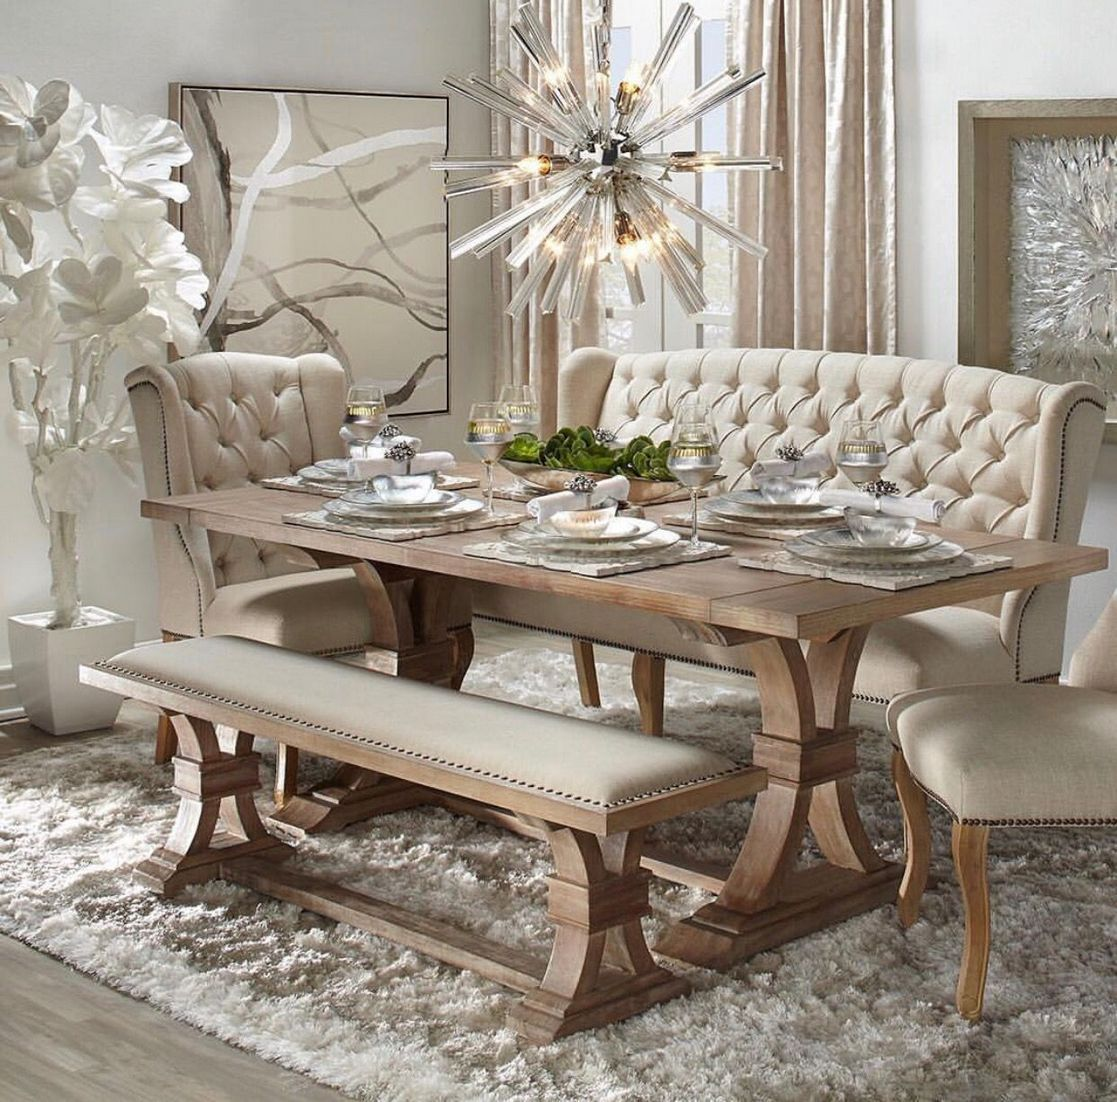 Fabulous Modern Cozy Dining Room 13 Firstmine Dining Room